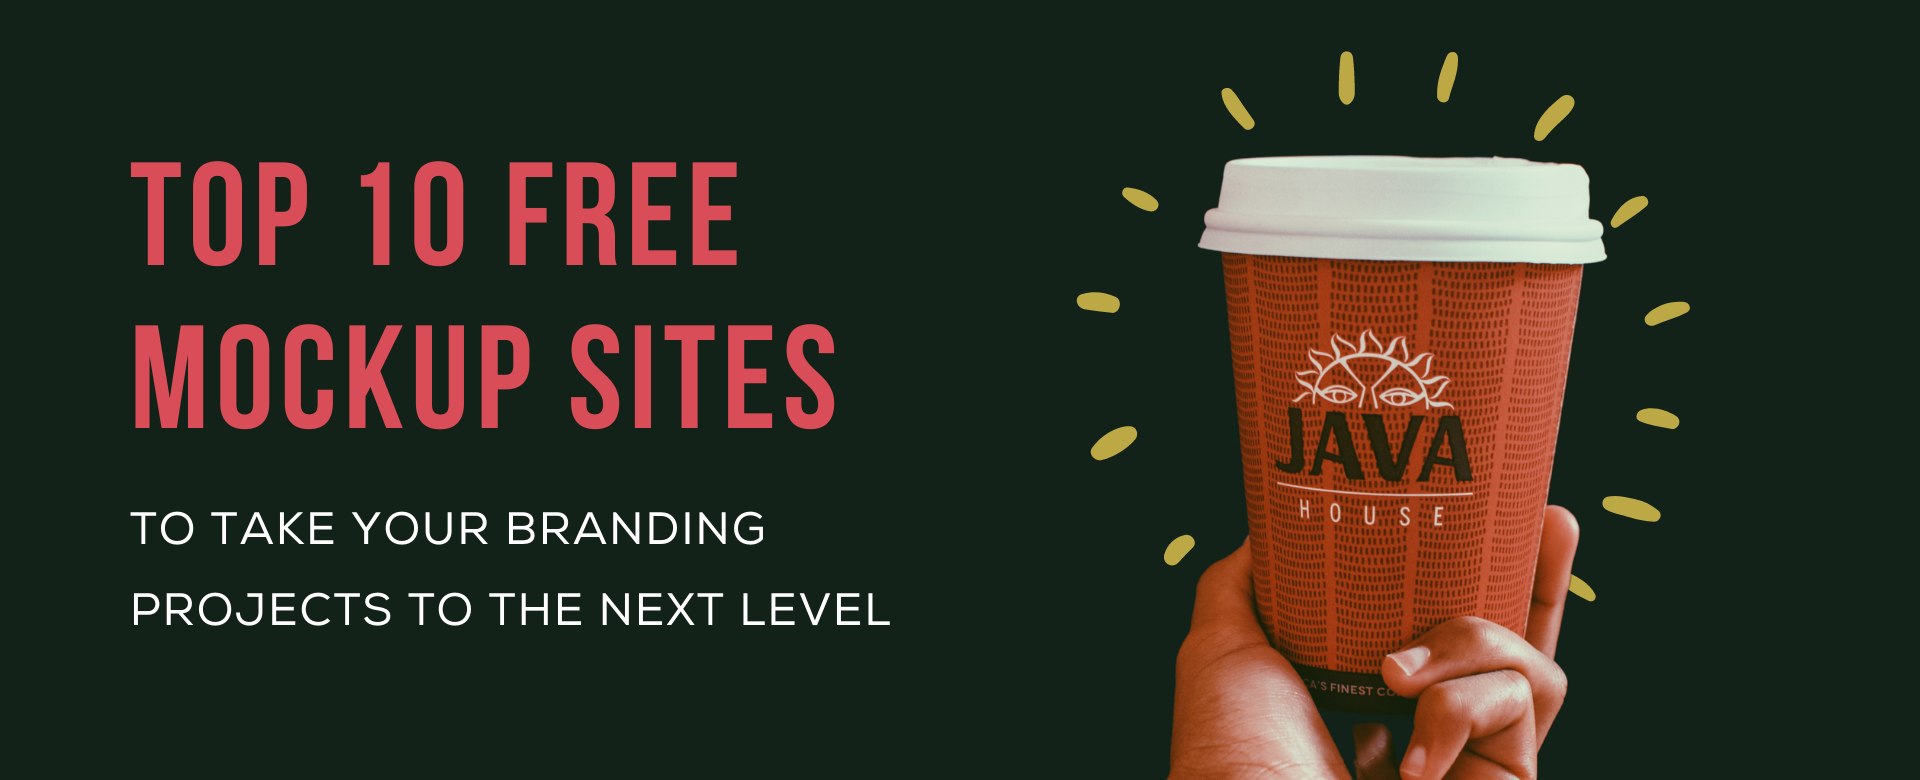 Top 10 free mockup sites to take your branding projects